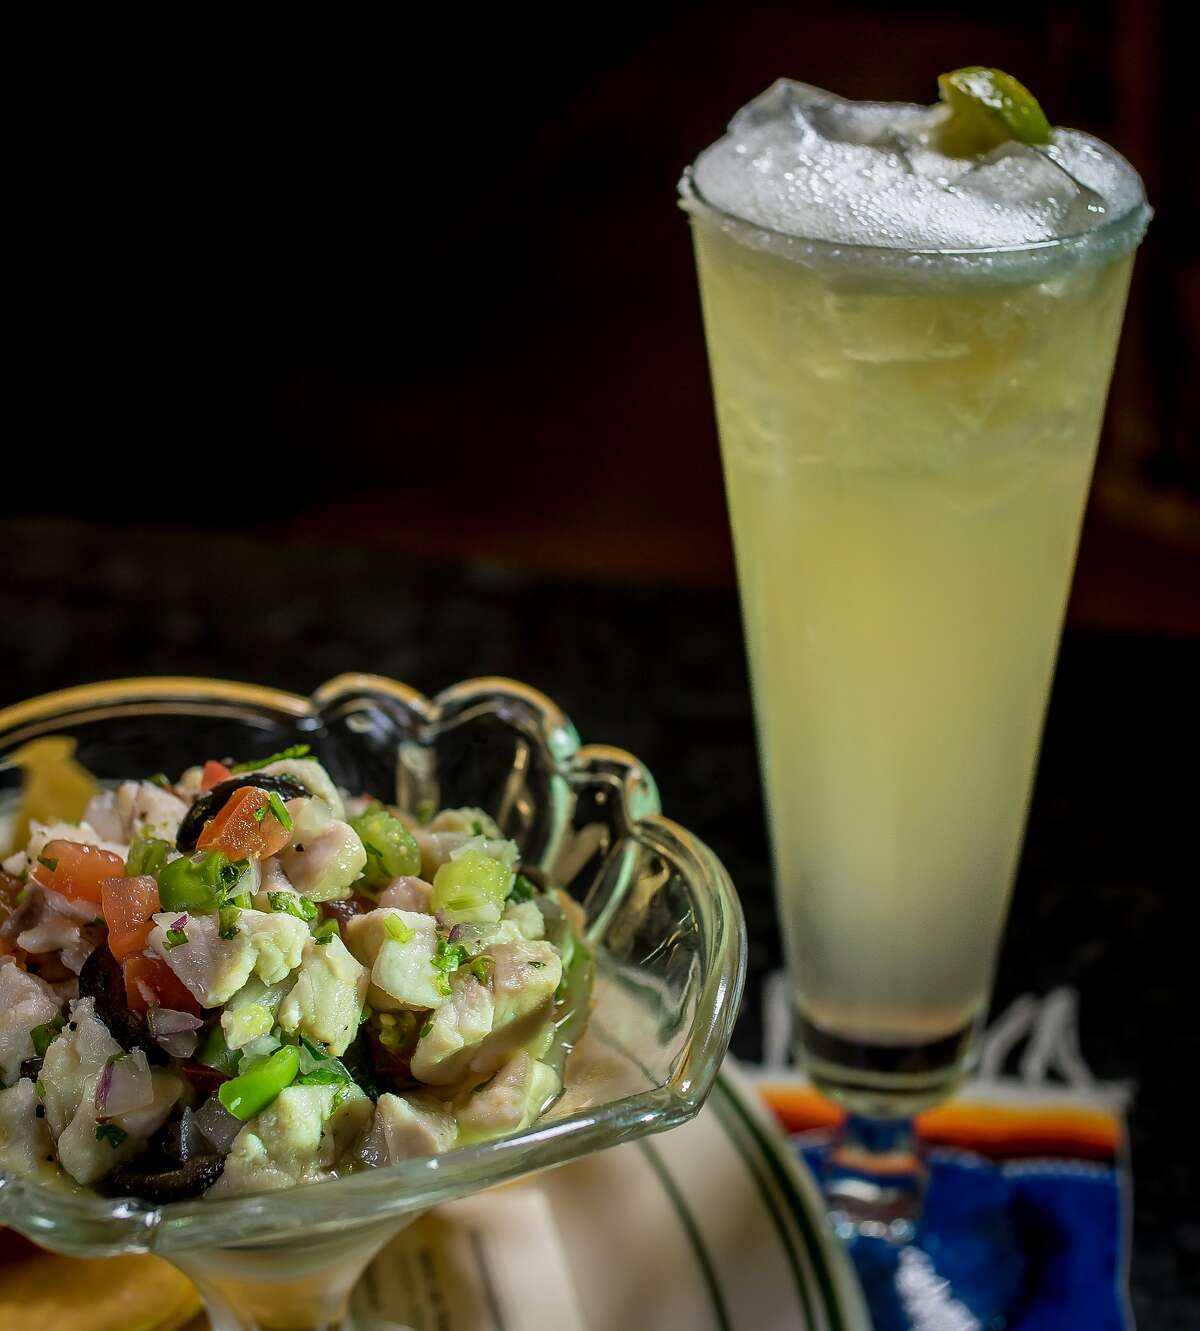 """The Ceviche with the """"House Margarita"""" at the Cadillac Bar & Grill in San Francisco, Calif. is seen on Thursday, November 12th, 2015."""